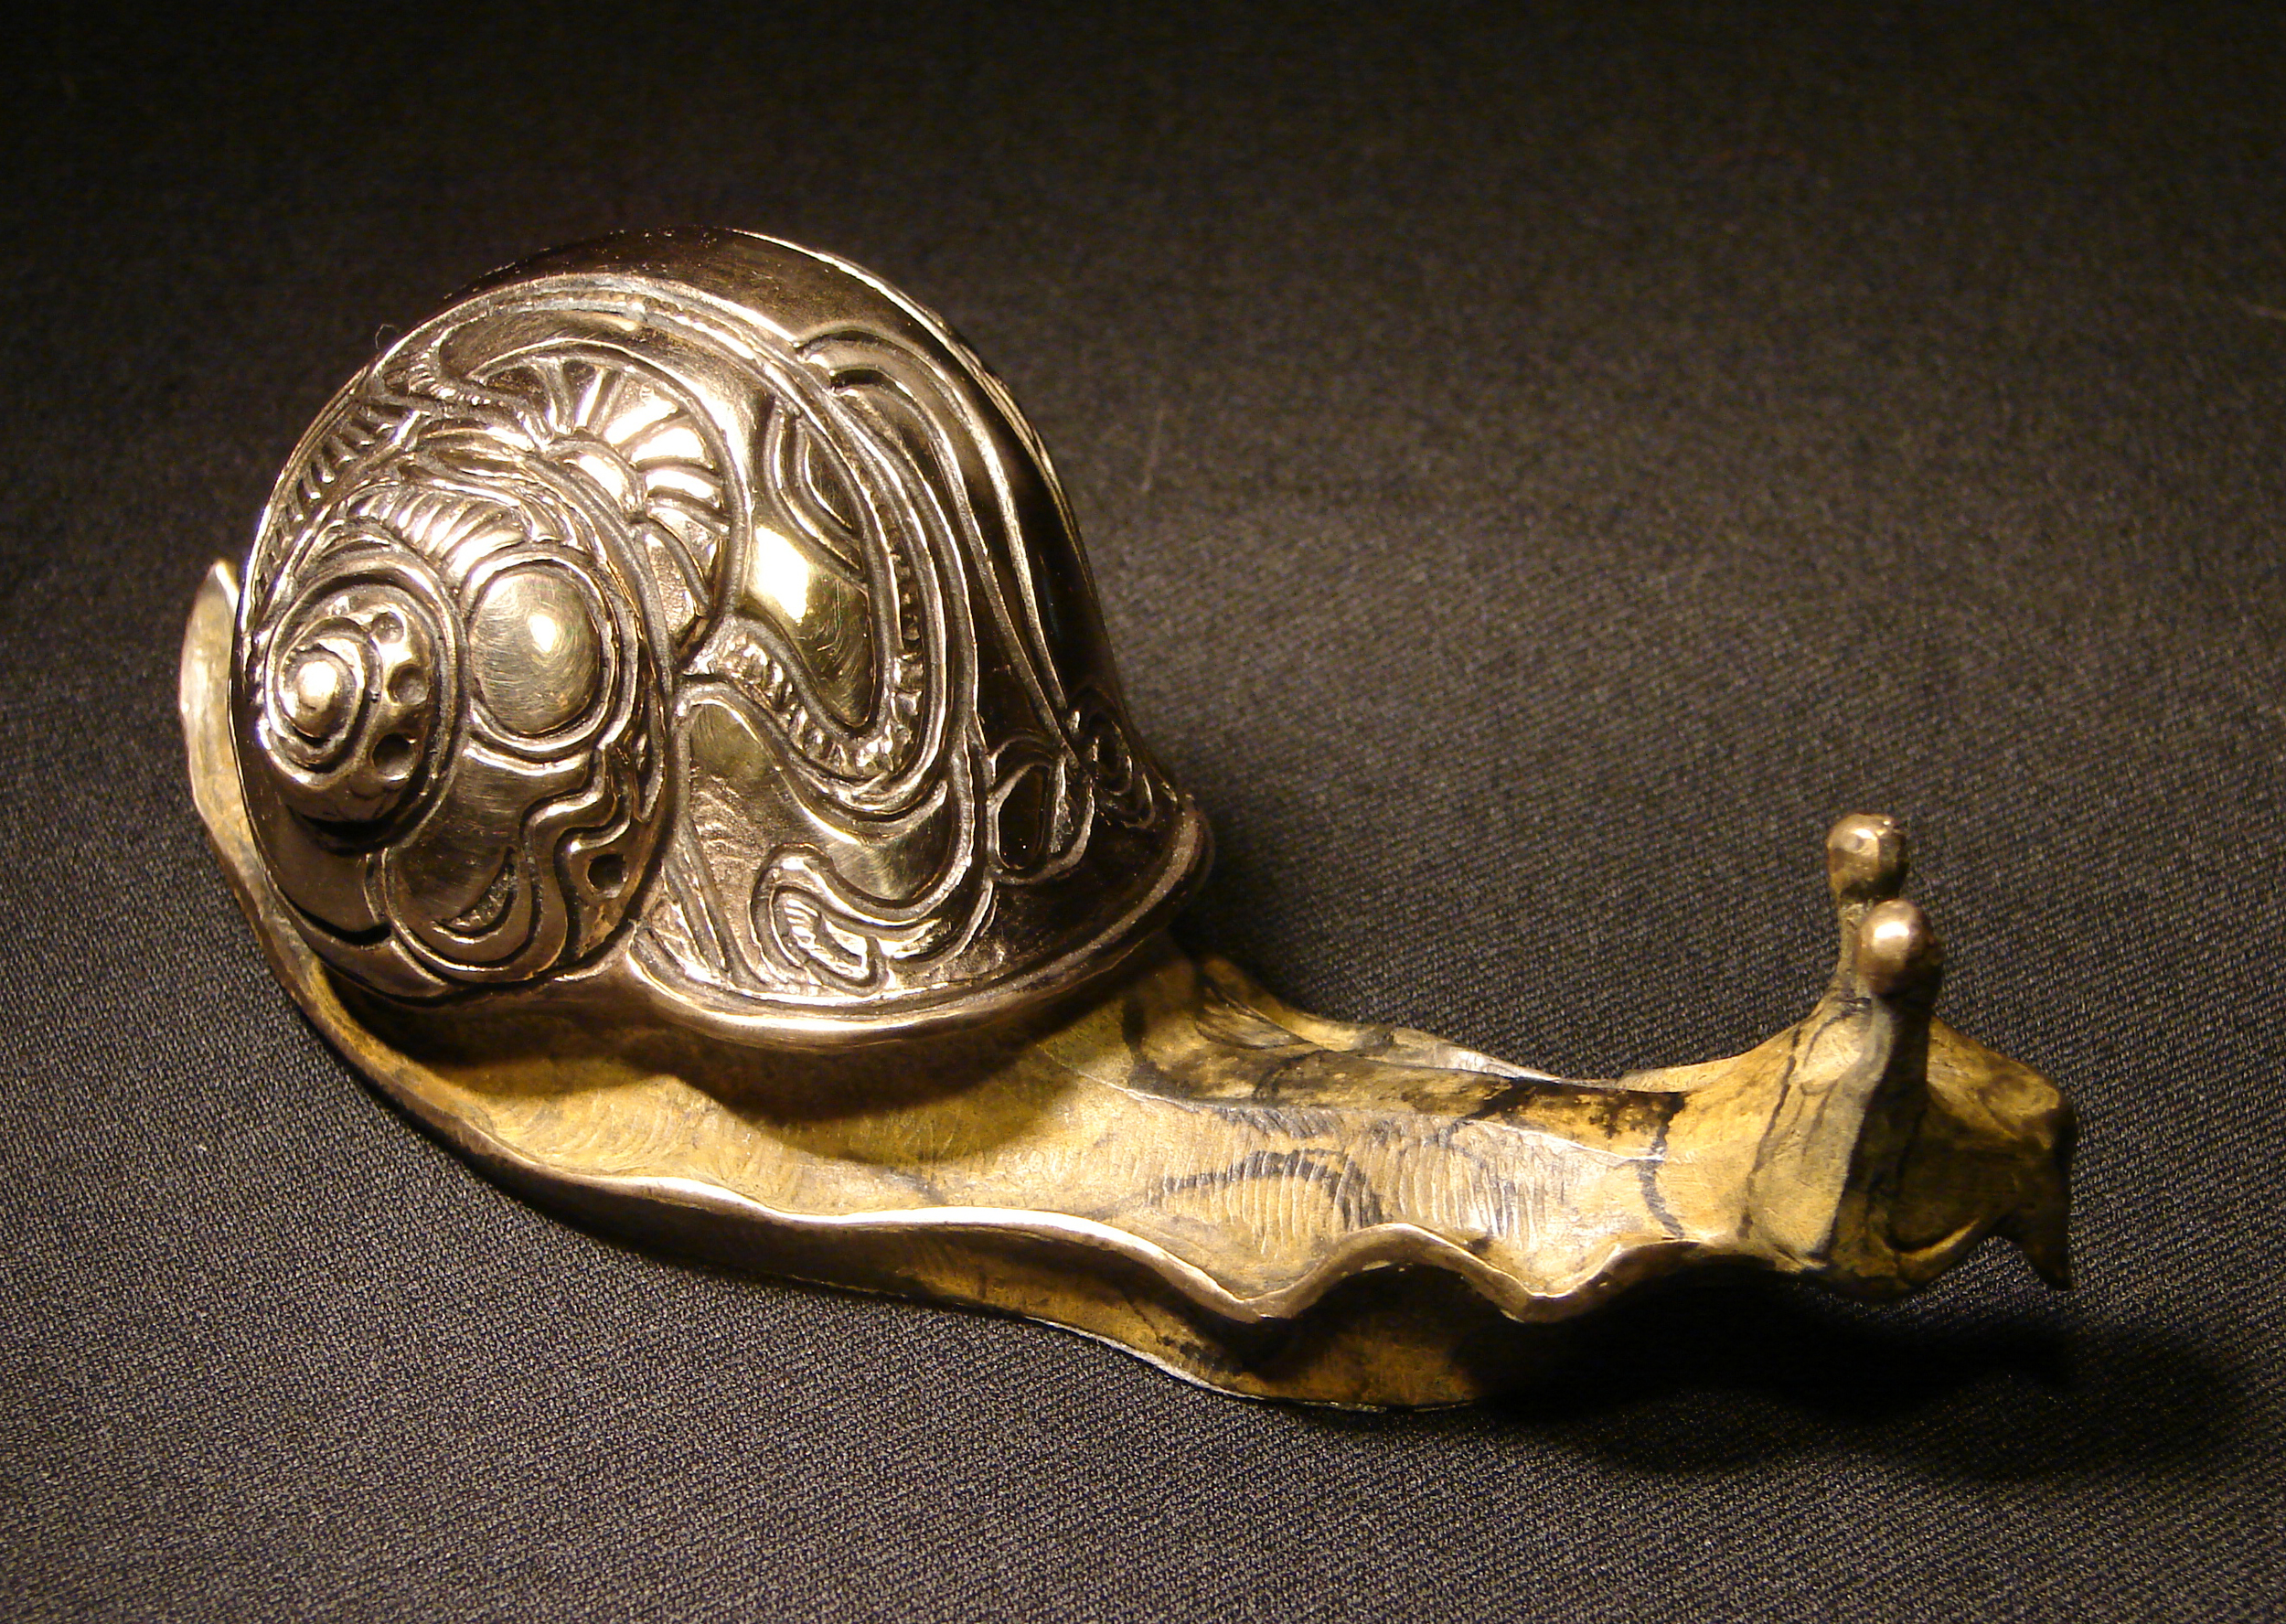 bronze-medium-snail-sculpture-john-maisano-1.jpg